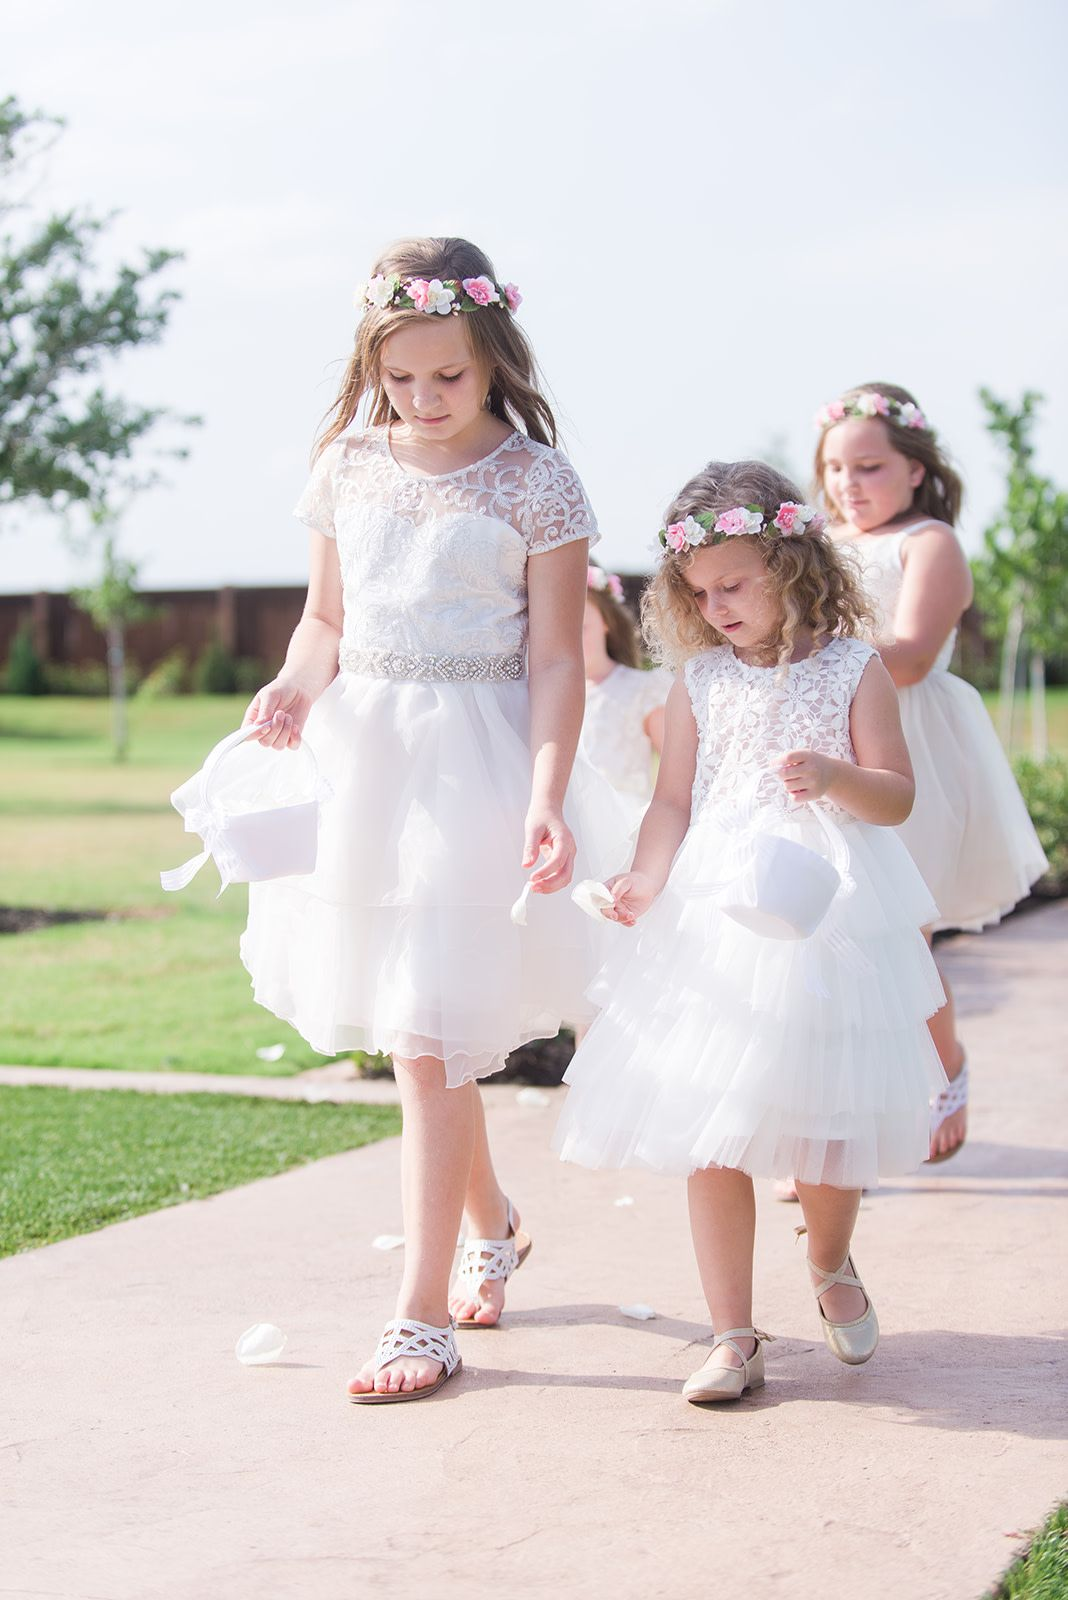 Tuscany Hill Wedding Ceremony Reception Hall Outdoor Wedding Ceremony Dallas Wedding Venues Bridal Party Outfit,Lace Beach Wedding Dresses Uk